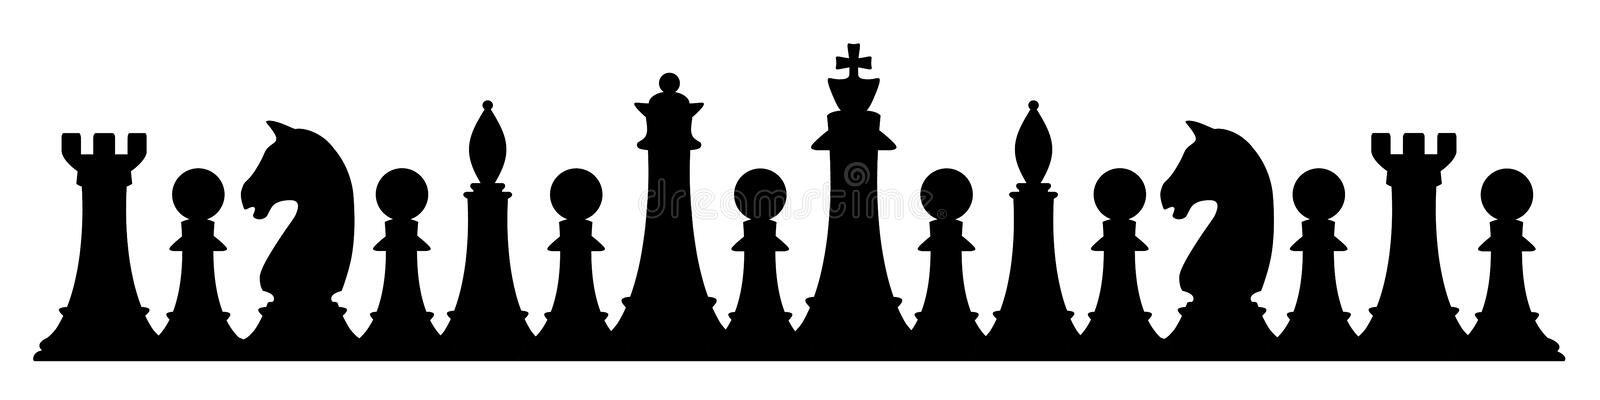 Silhouette of chess figures on white vector illustration